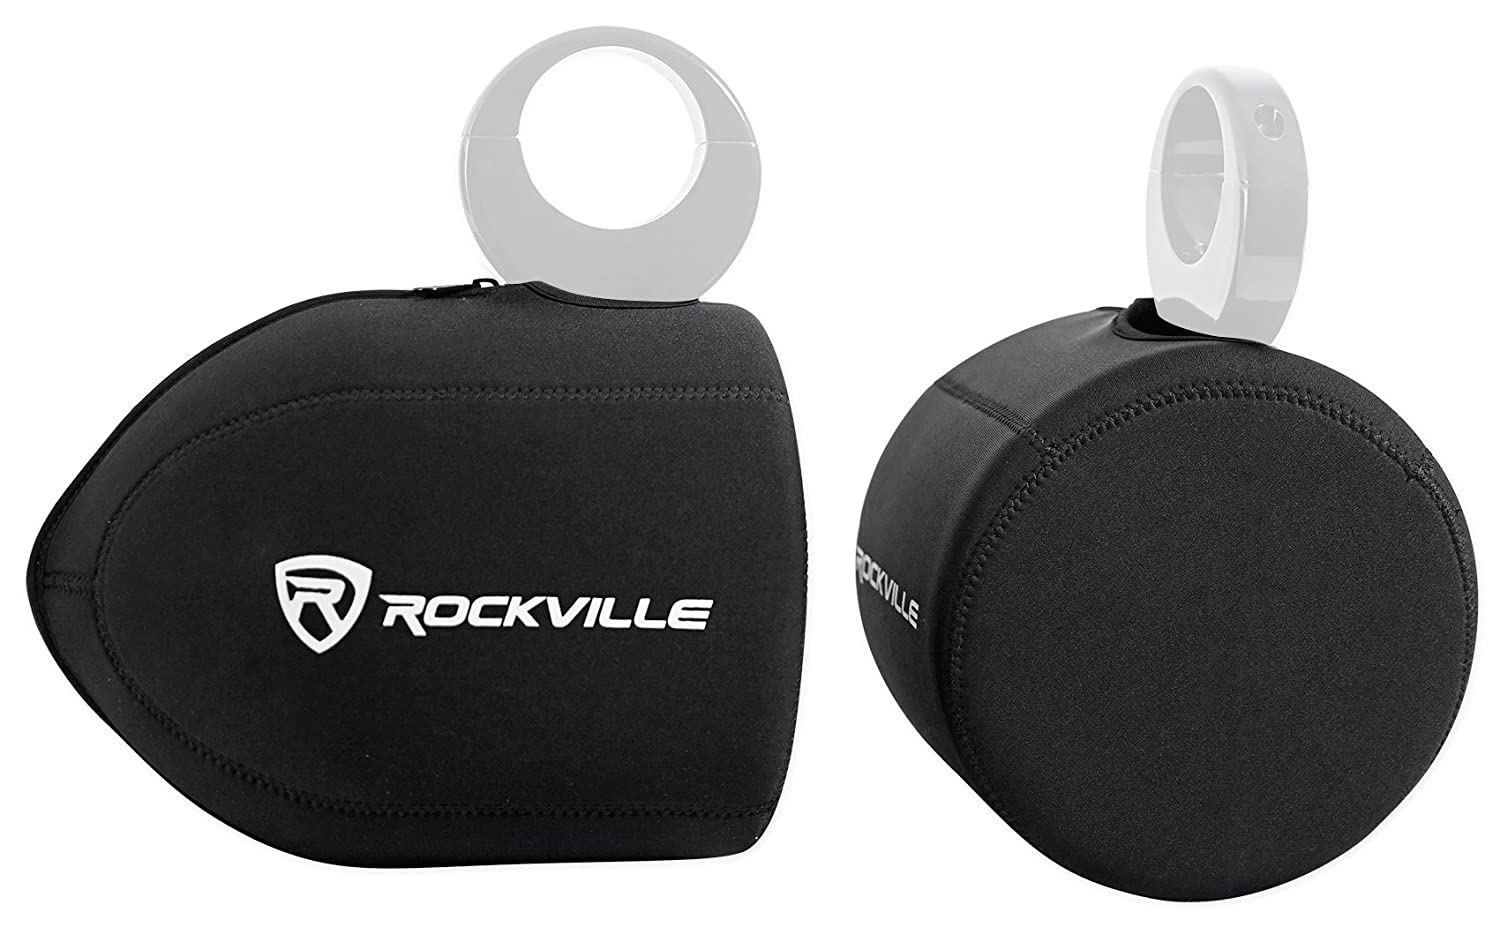 Rockville Neoprene Covers For (2) Wet Sounds ICON8 8 Wakeboard Tower Speakers RWBC80 For (2) ICON8